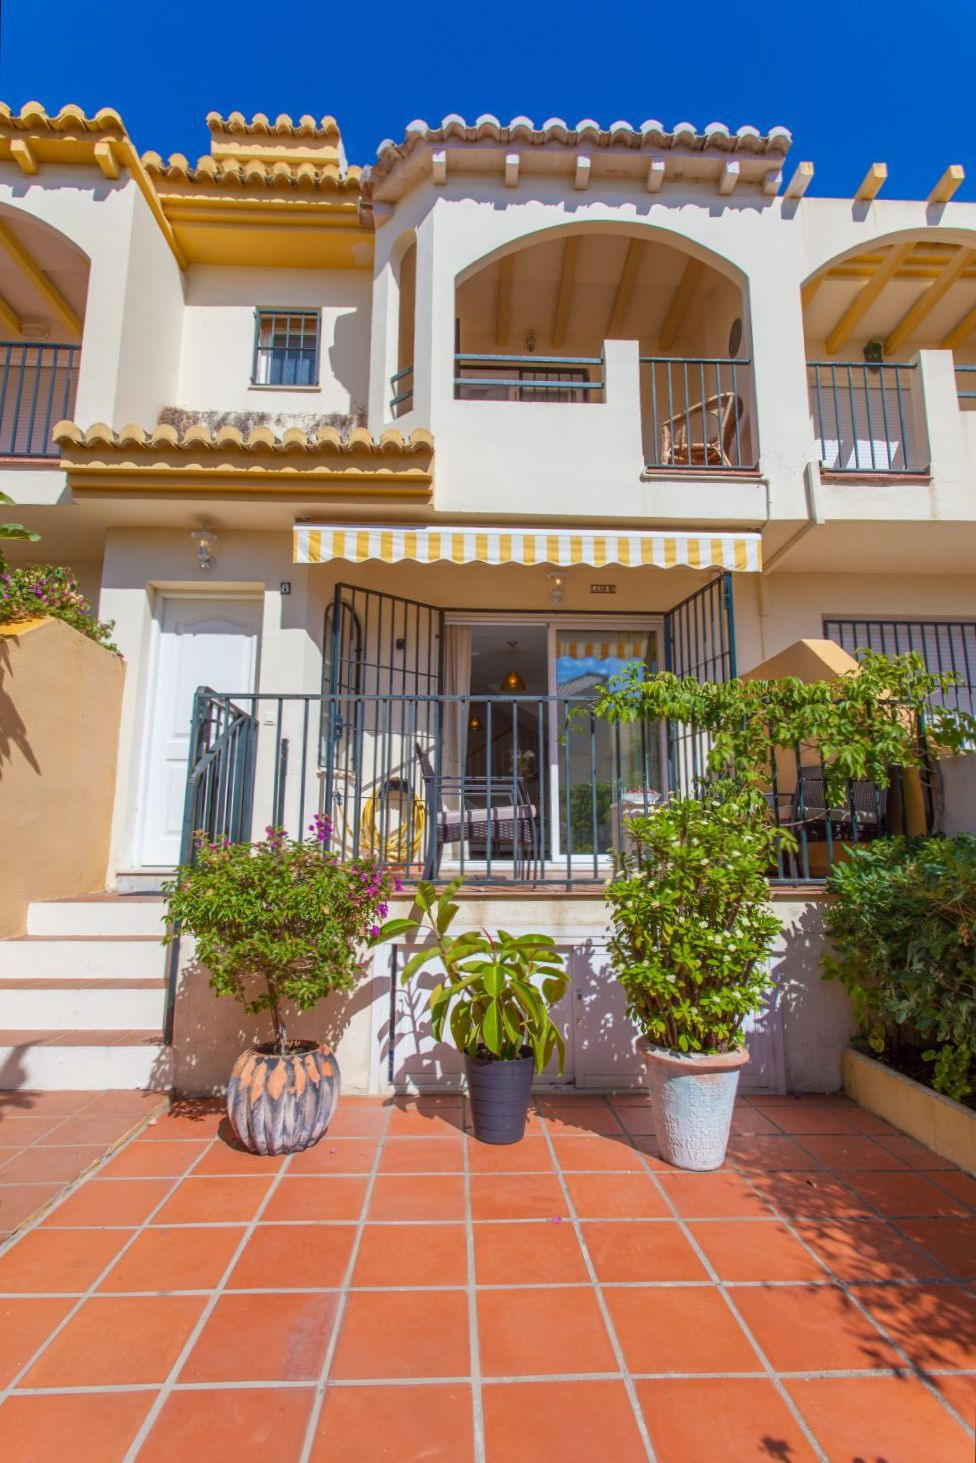 Beautiful 4 Bedroom 3 Bathroom Townhouse located in Costabella, East Marbella and only a 2 minute wa,Spain